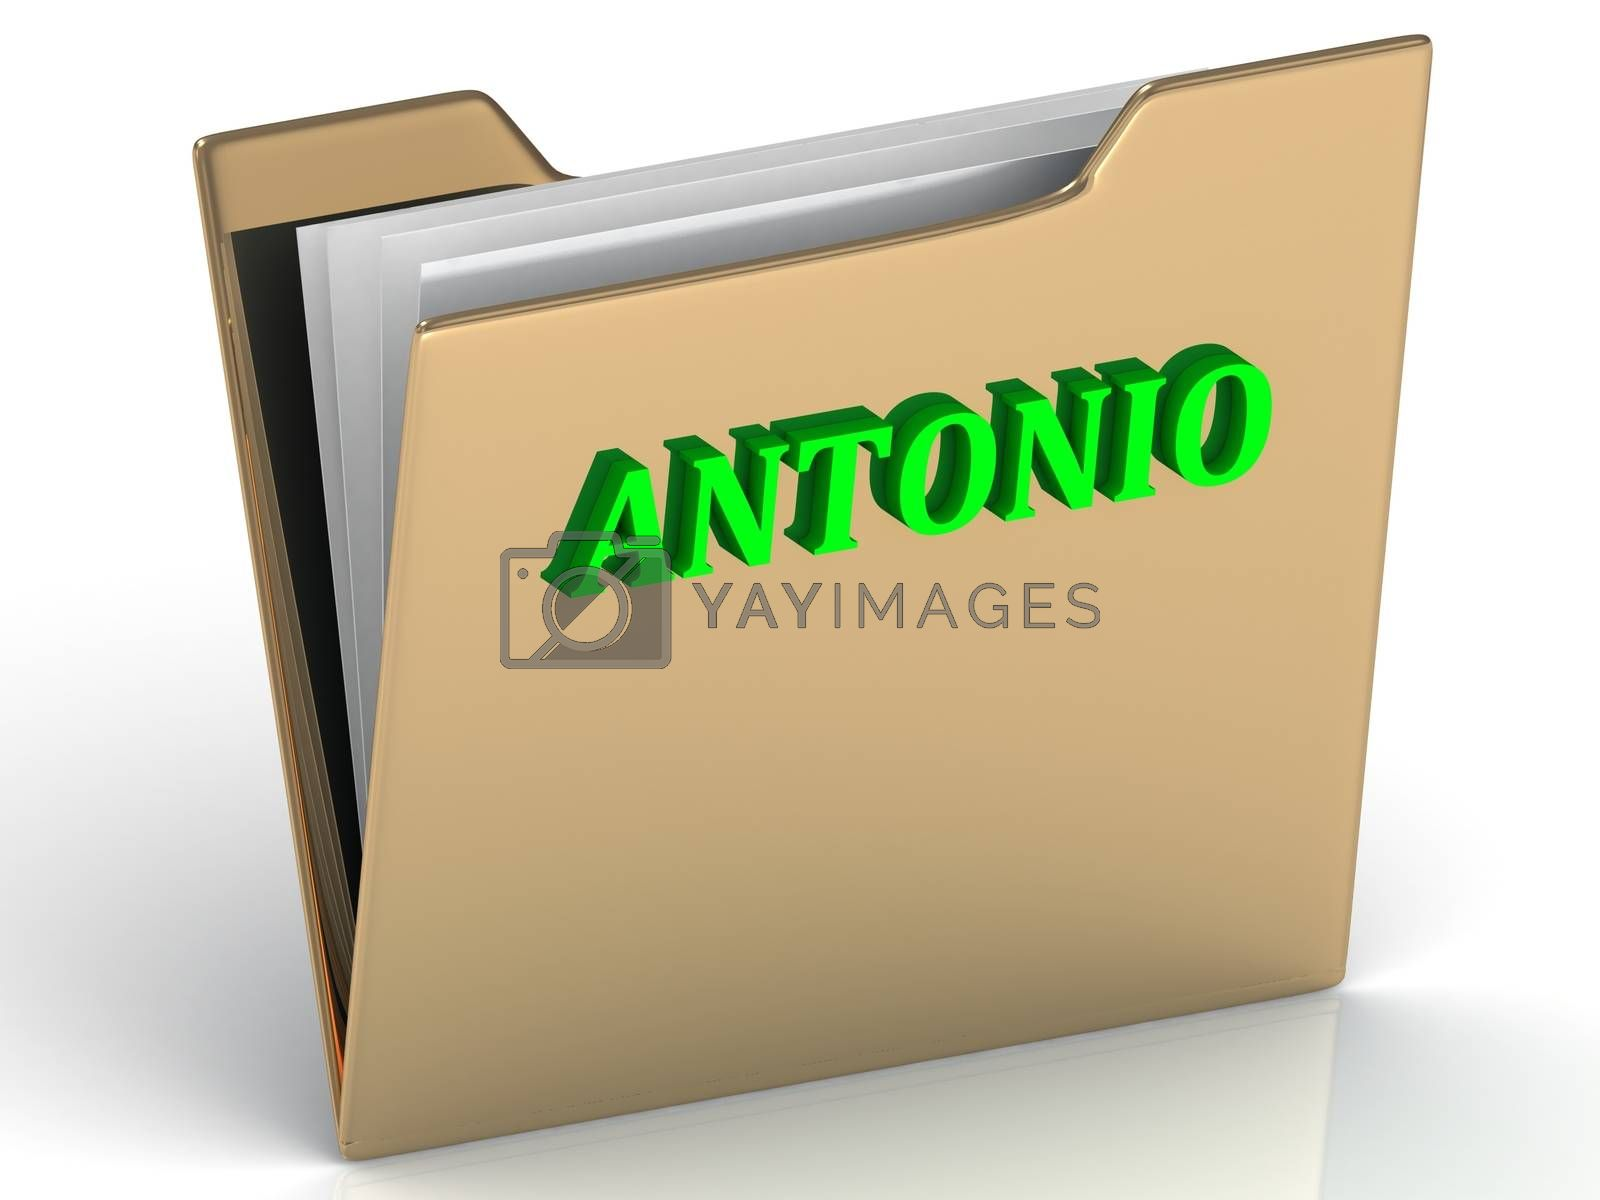 ANTONIO- bright green letters on gold paperwork folder on a white background